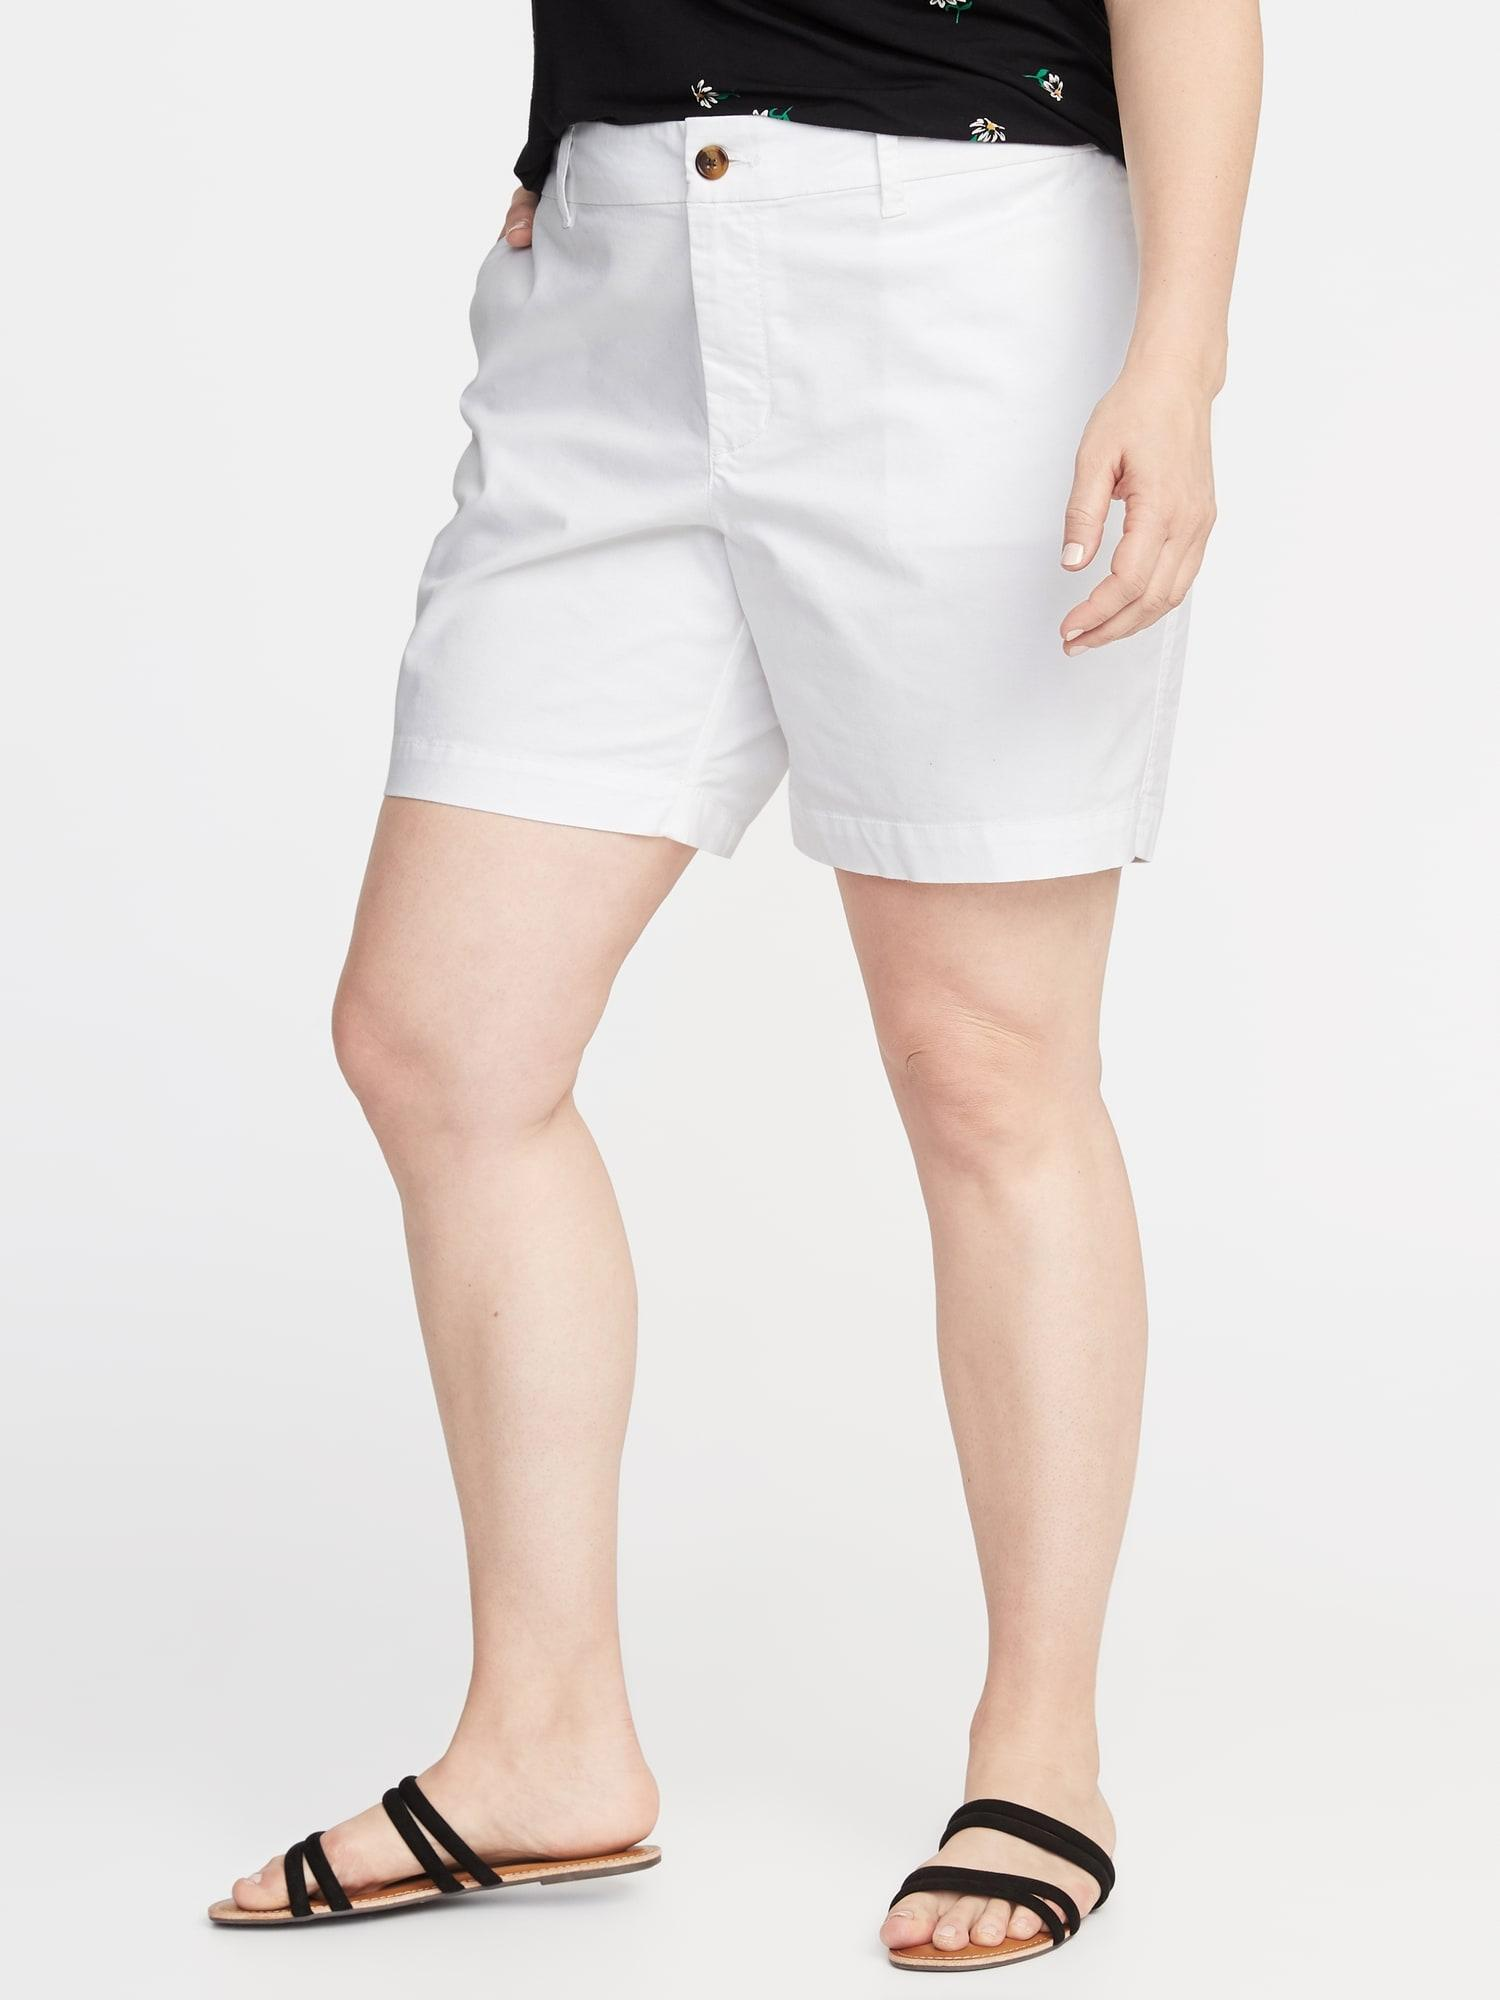 30a7e310a0 Old Navy. Women's White Mid-rise Plus-size Twill Everyday Shorts - 7-inch  Inseam